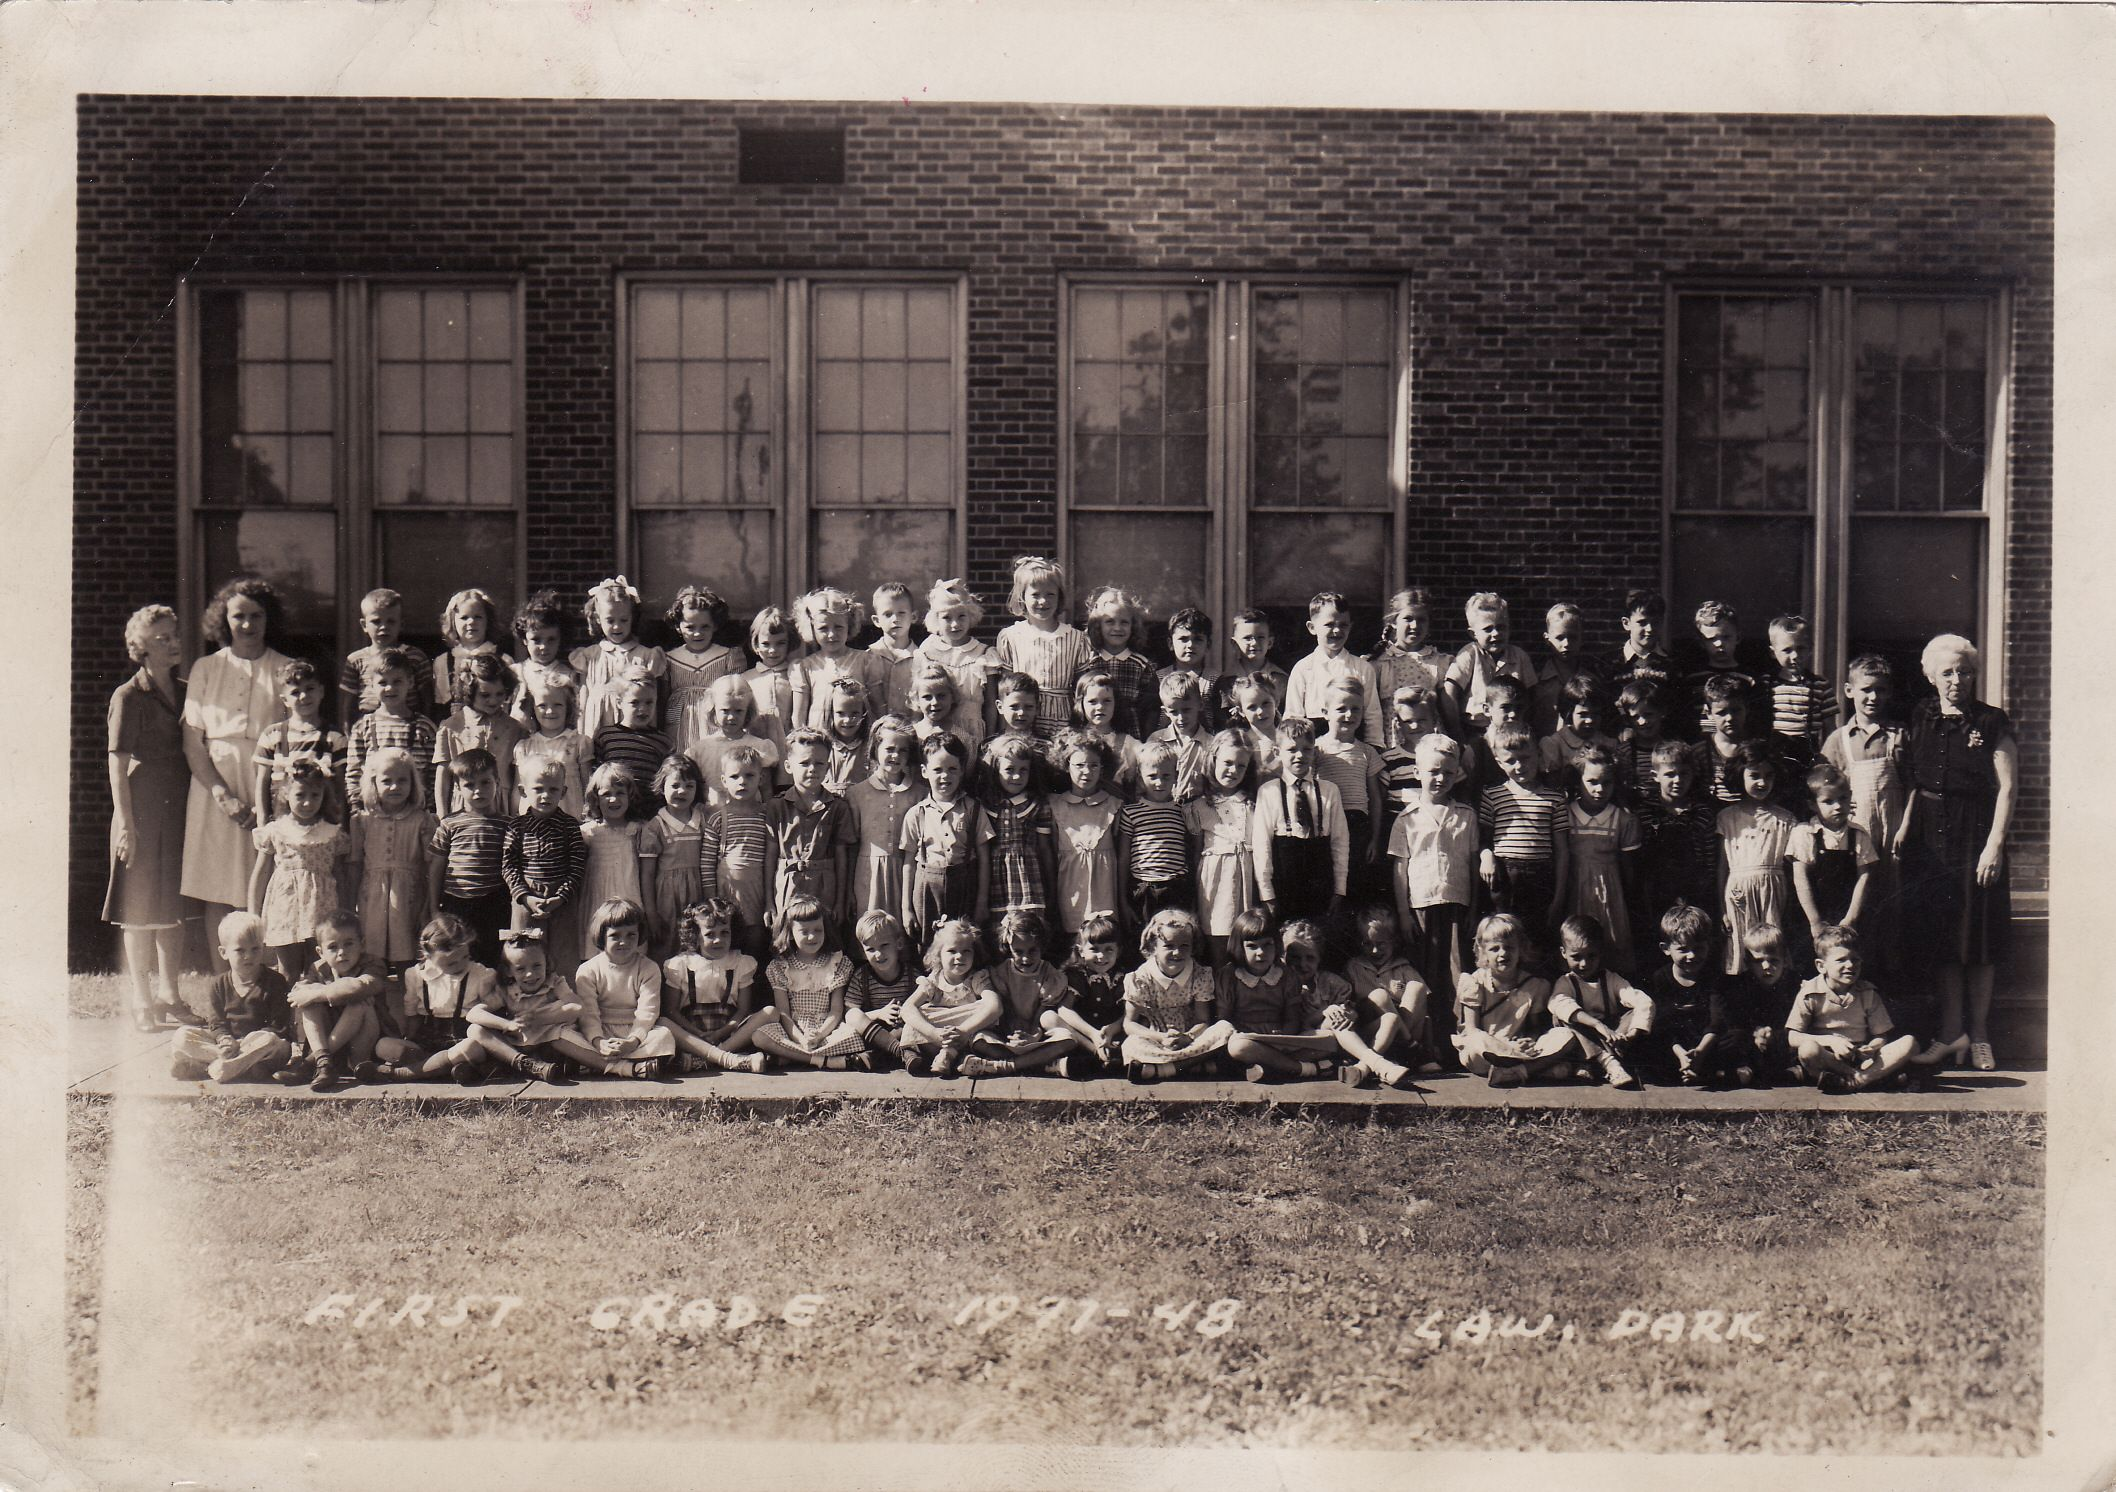 Lawrence Park, First Grade, 1947-1948 - Erie, PA